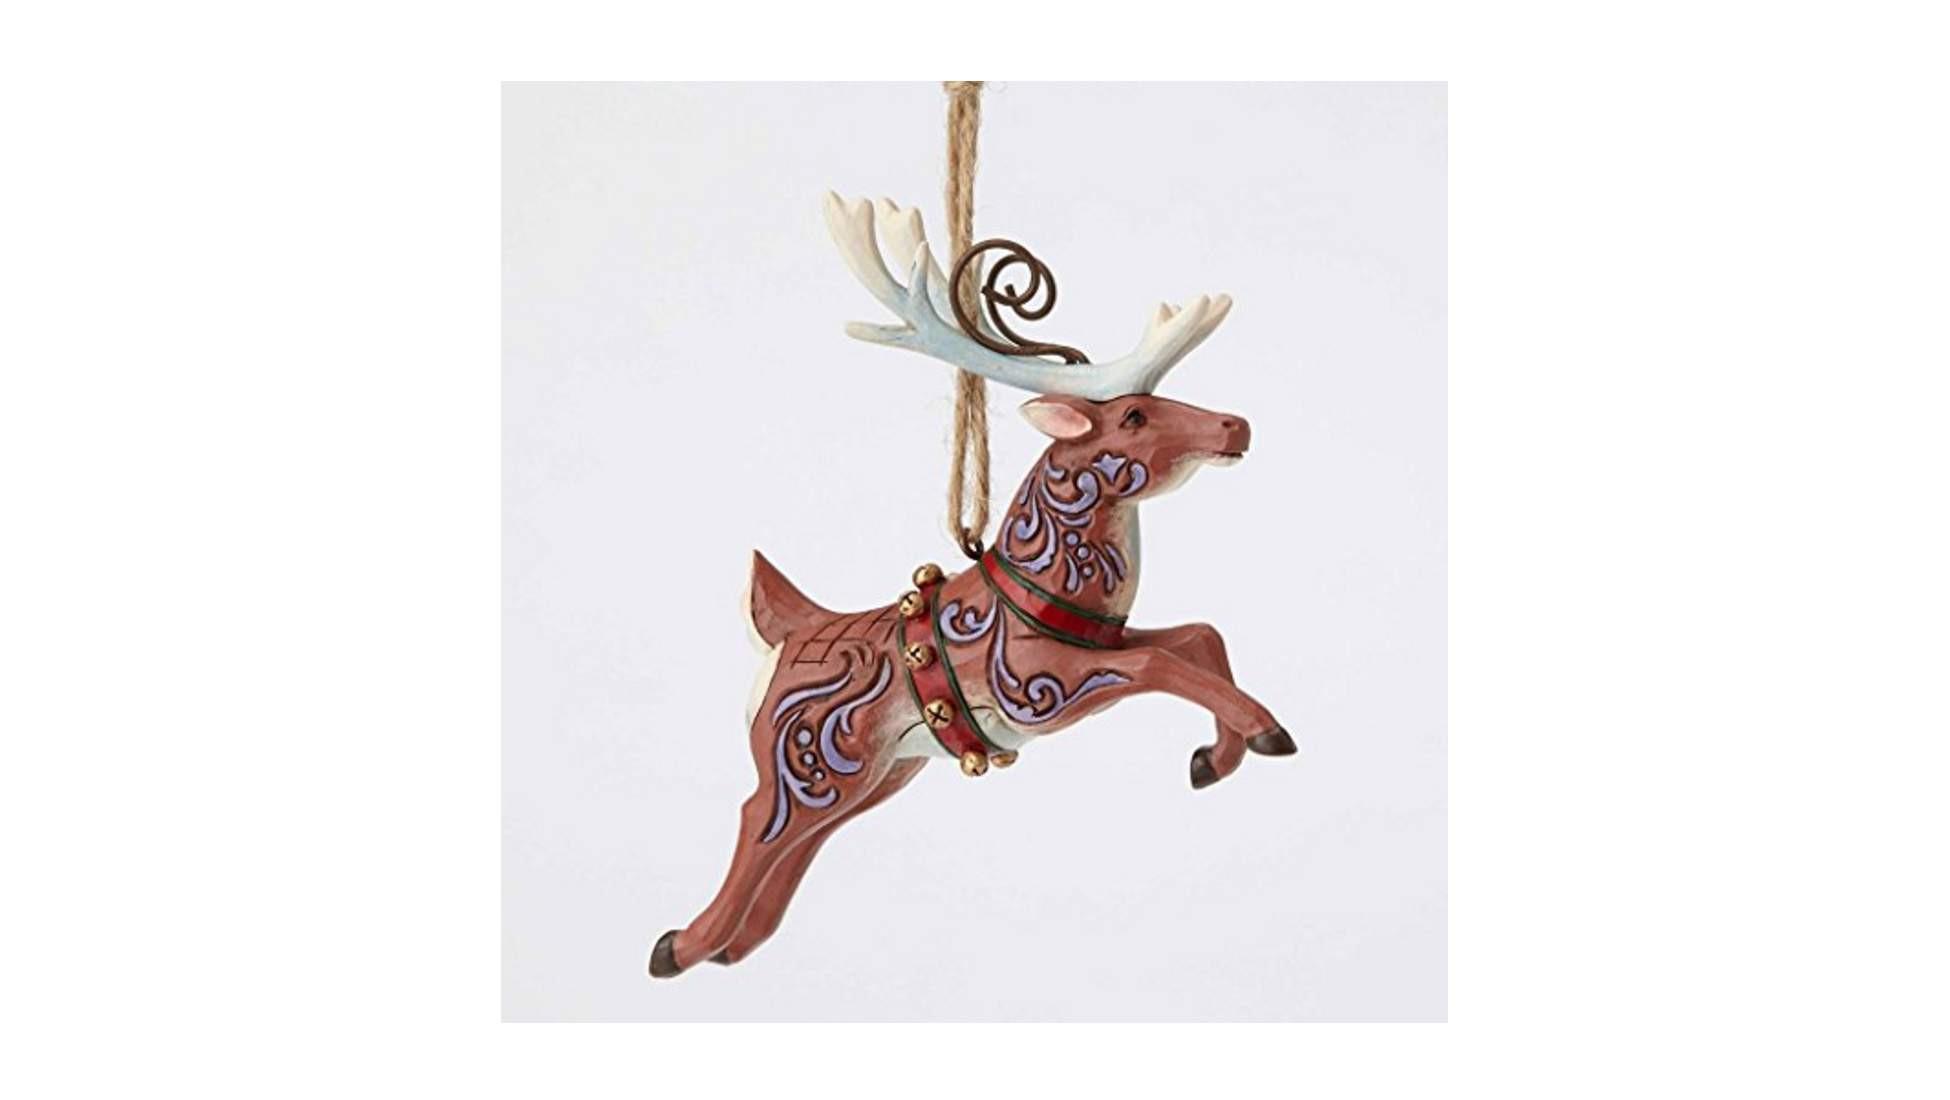 Best Of top 40 Best Christmas Tree ornaments for 2017 Christmas Reindeer ornaments Of Adorable 44 Pictures Christmas Reindeer ornaments